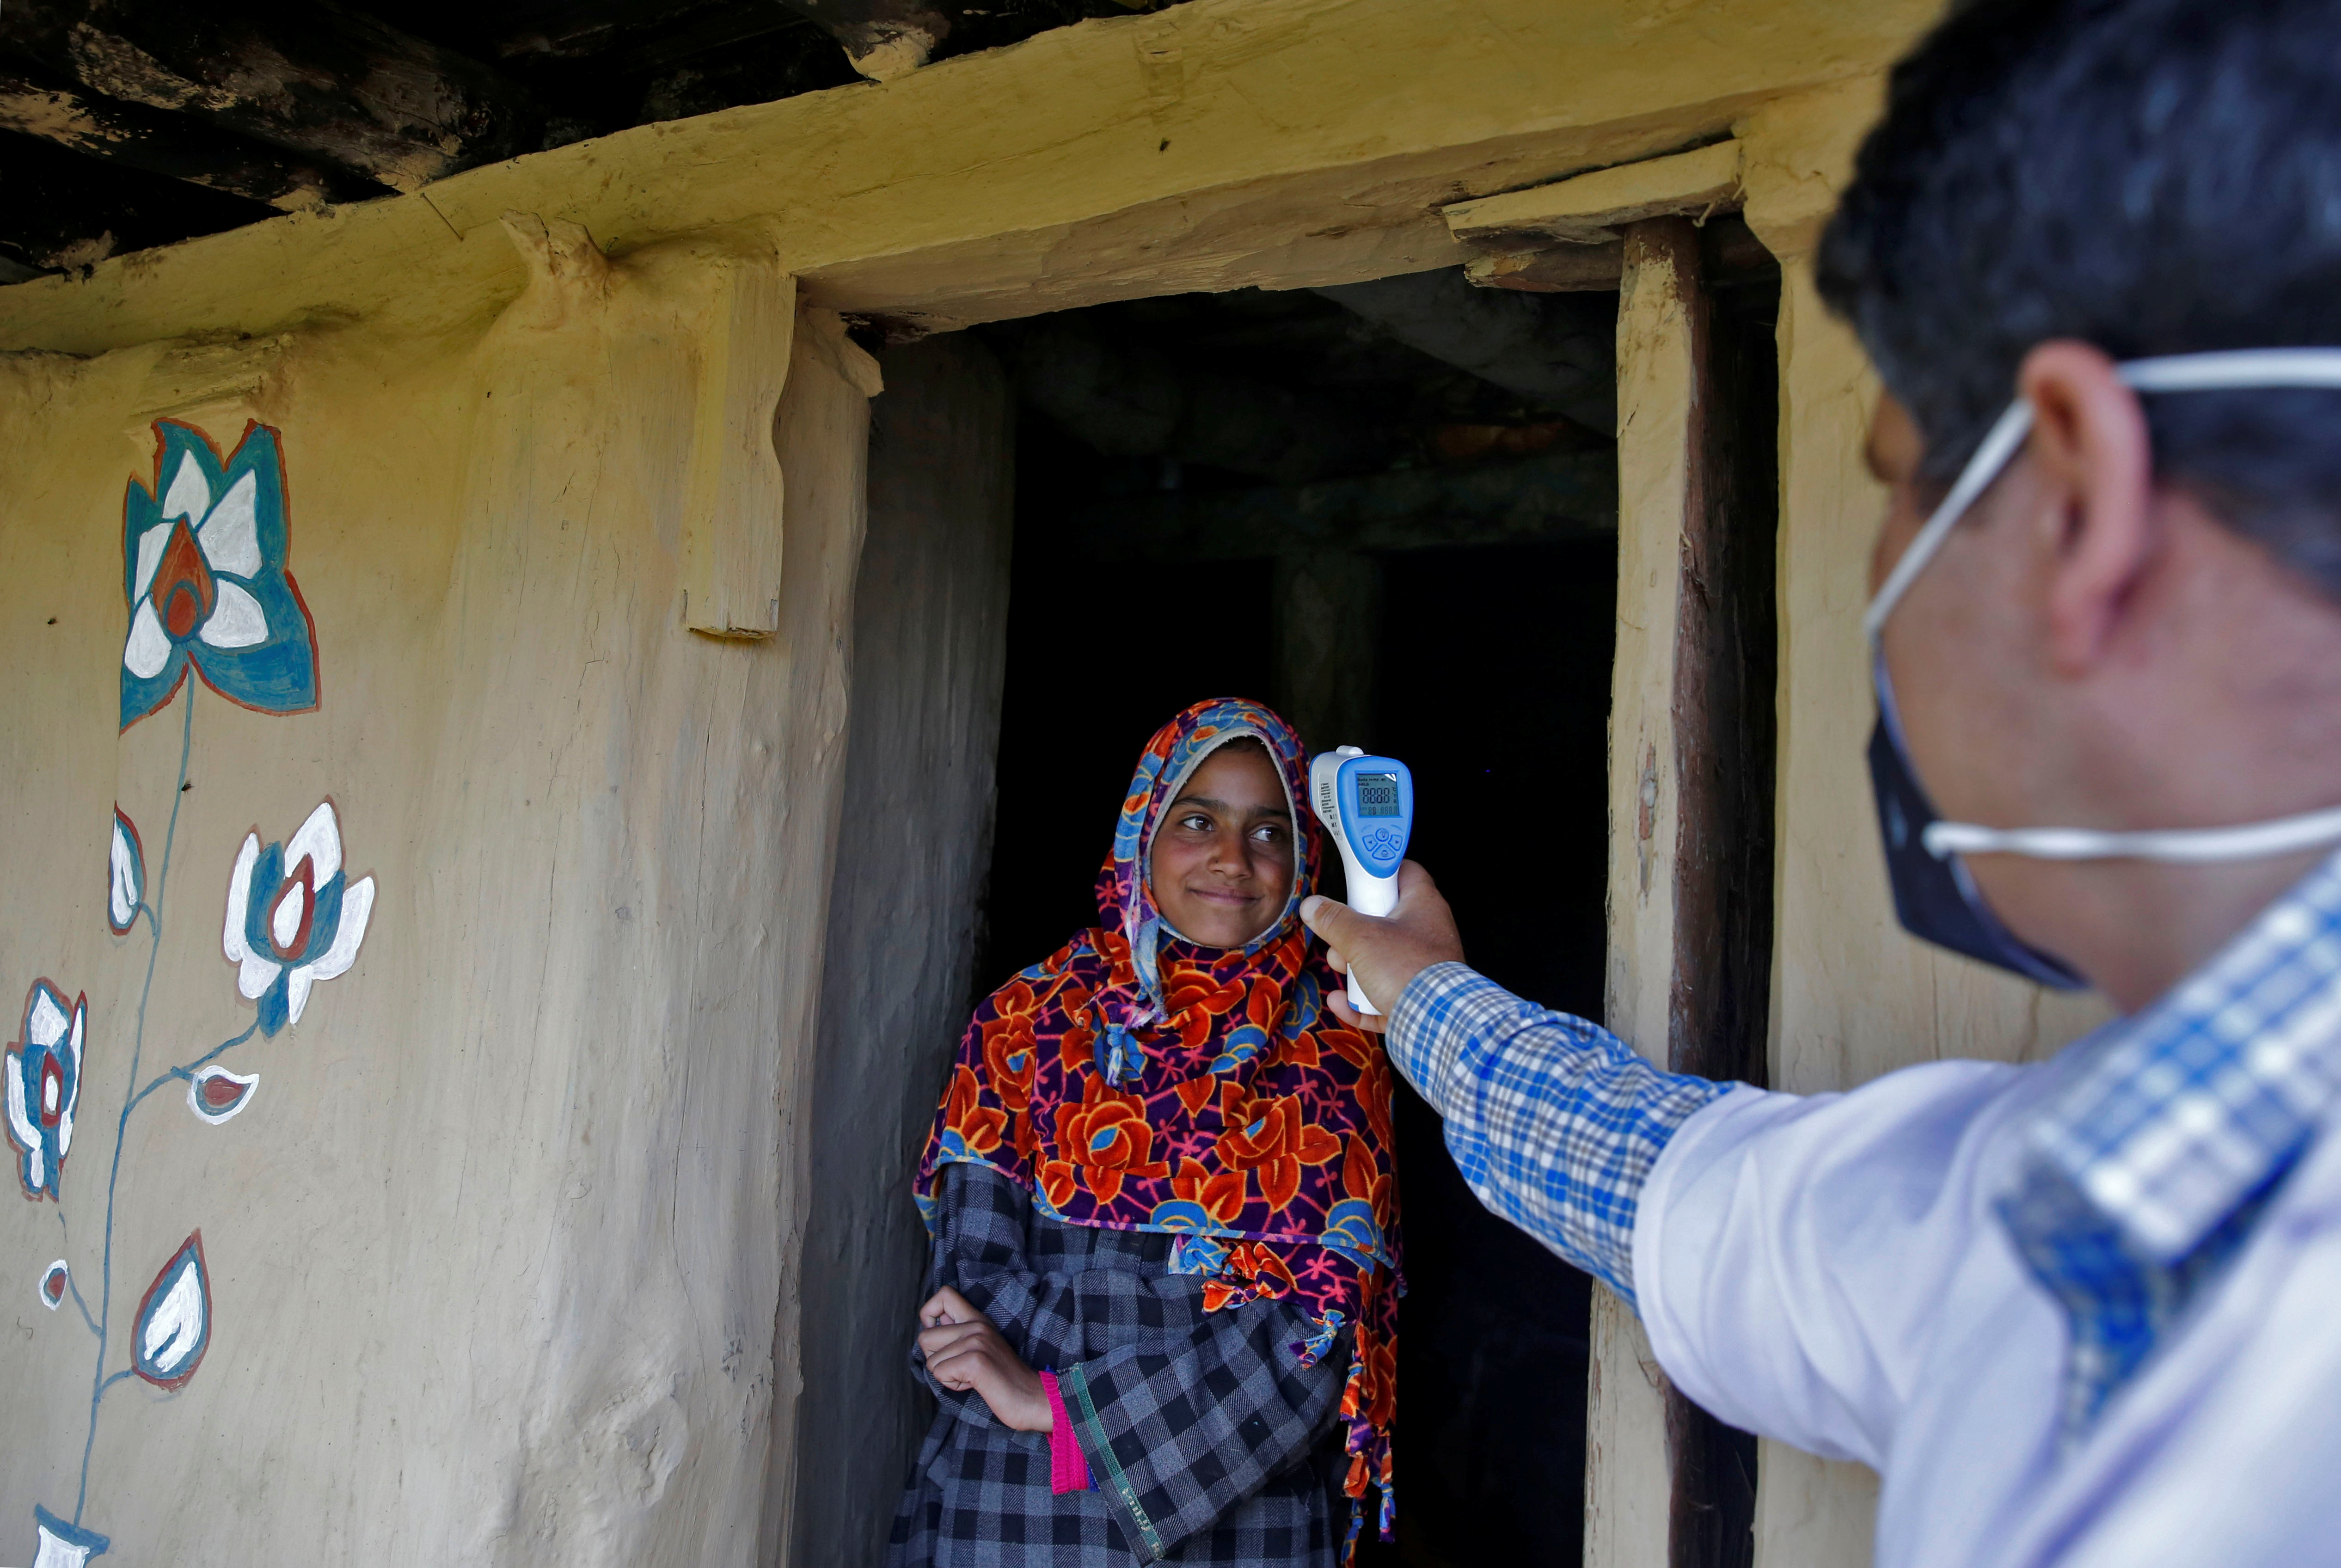 A healthcare worker checks temperature of a shepherd girl at her hut during a COVID-19 vaccination drive at a forest area in south Kashmir's Pulwama district June 7, 2021. REUTERS/Danish Ismail